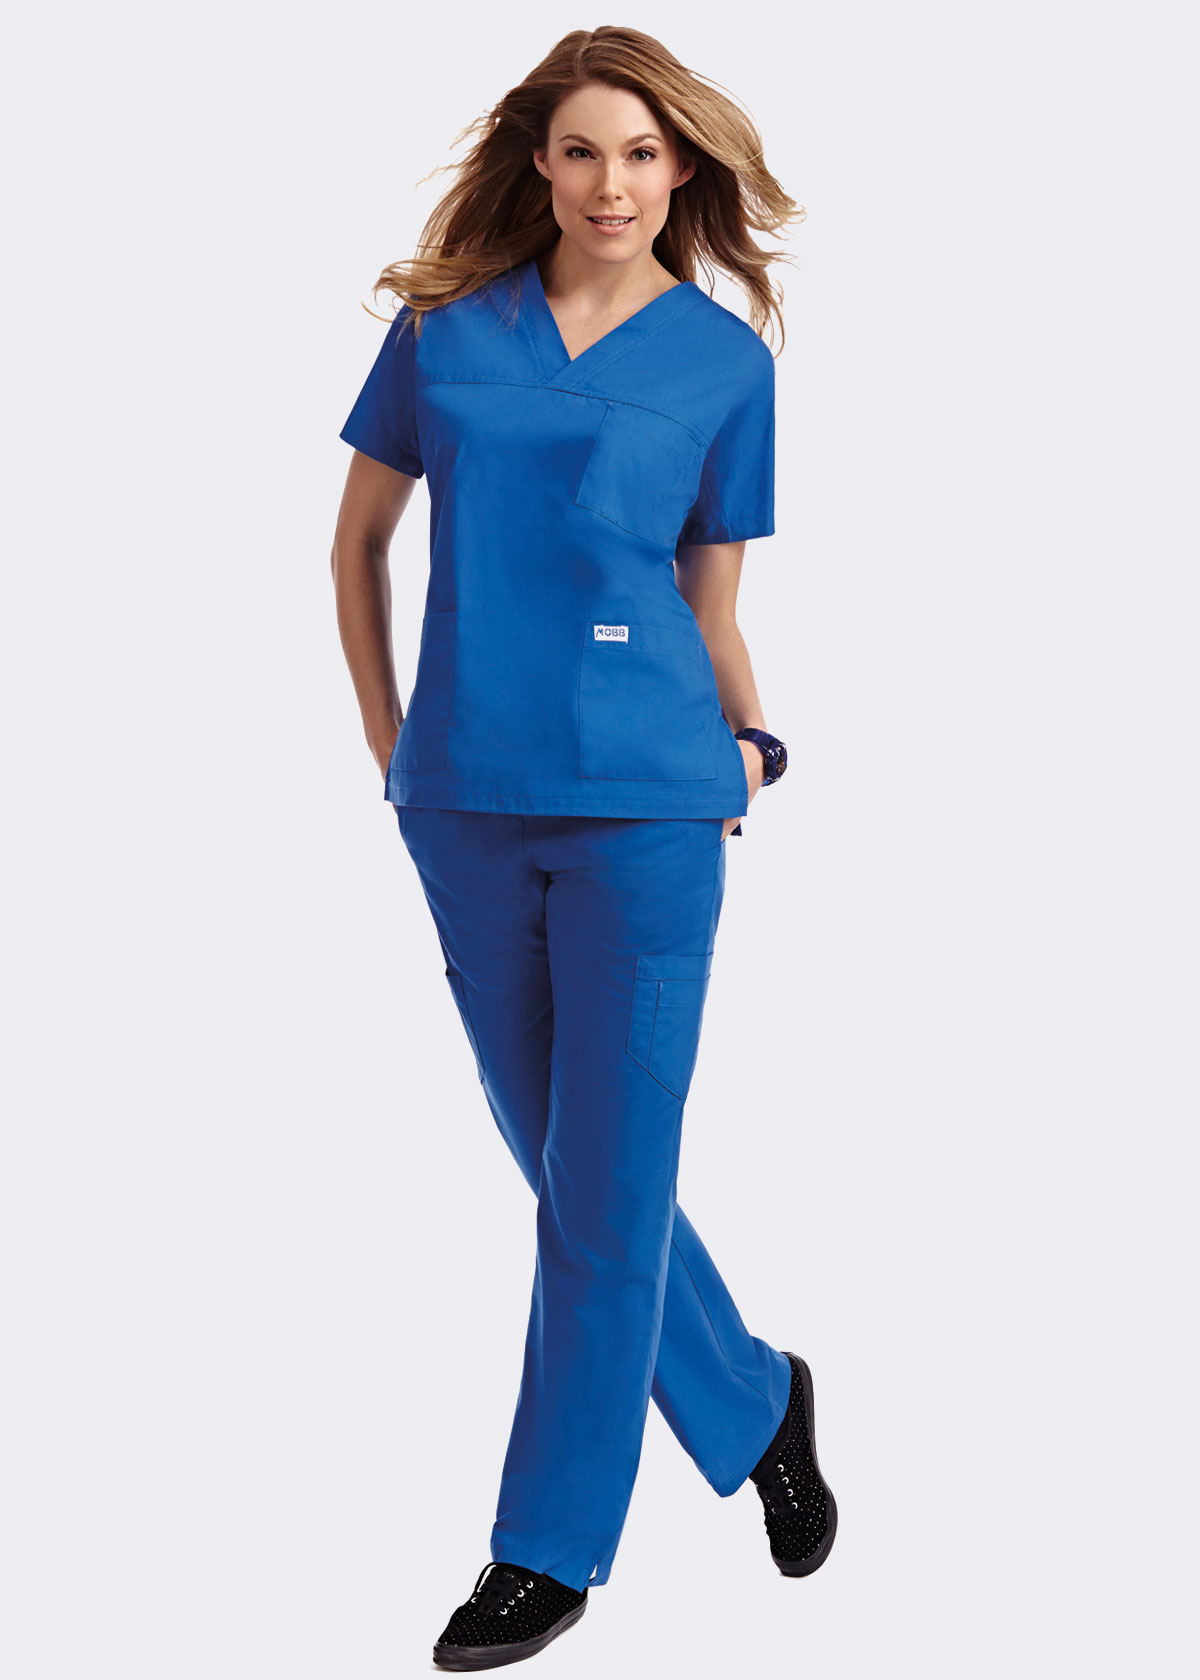 3 Pocket V-Neck Scrub Top, with Flip Flap Scrub Pant